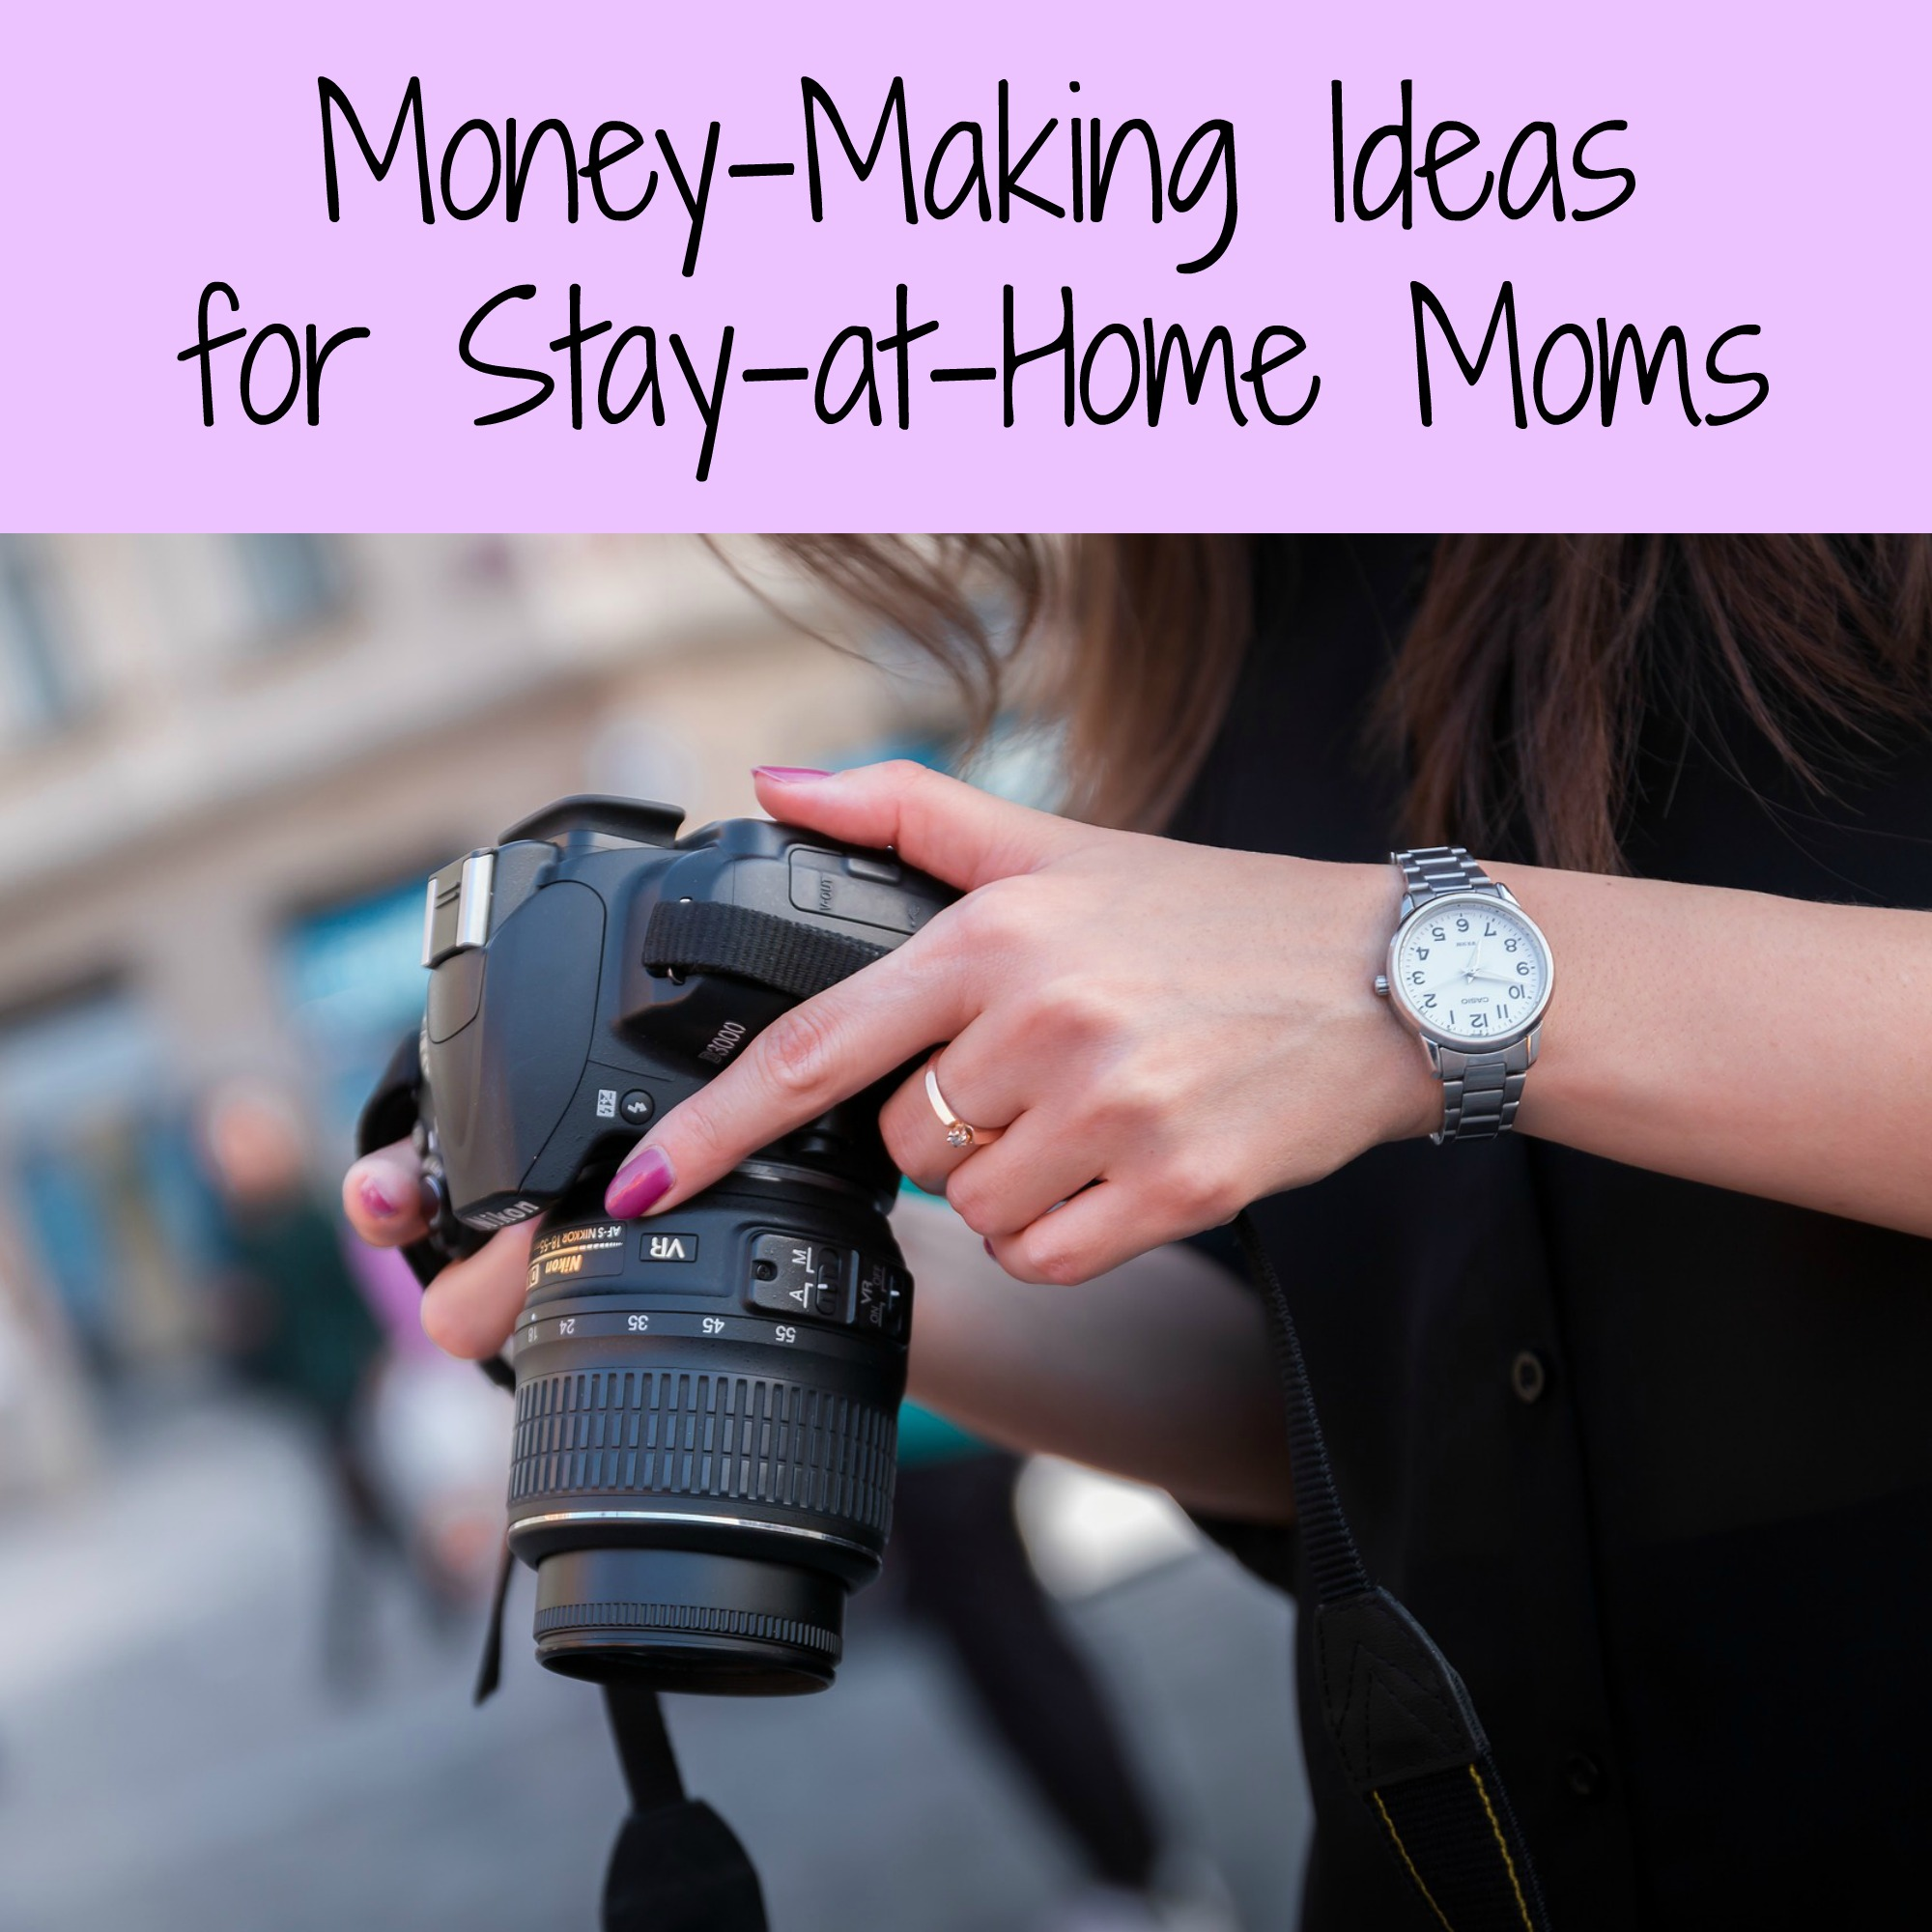 Money-Making Ideas for Stay-at-Home Moms